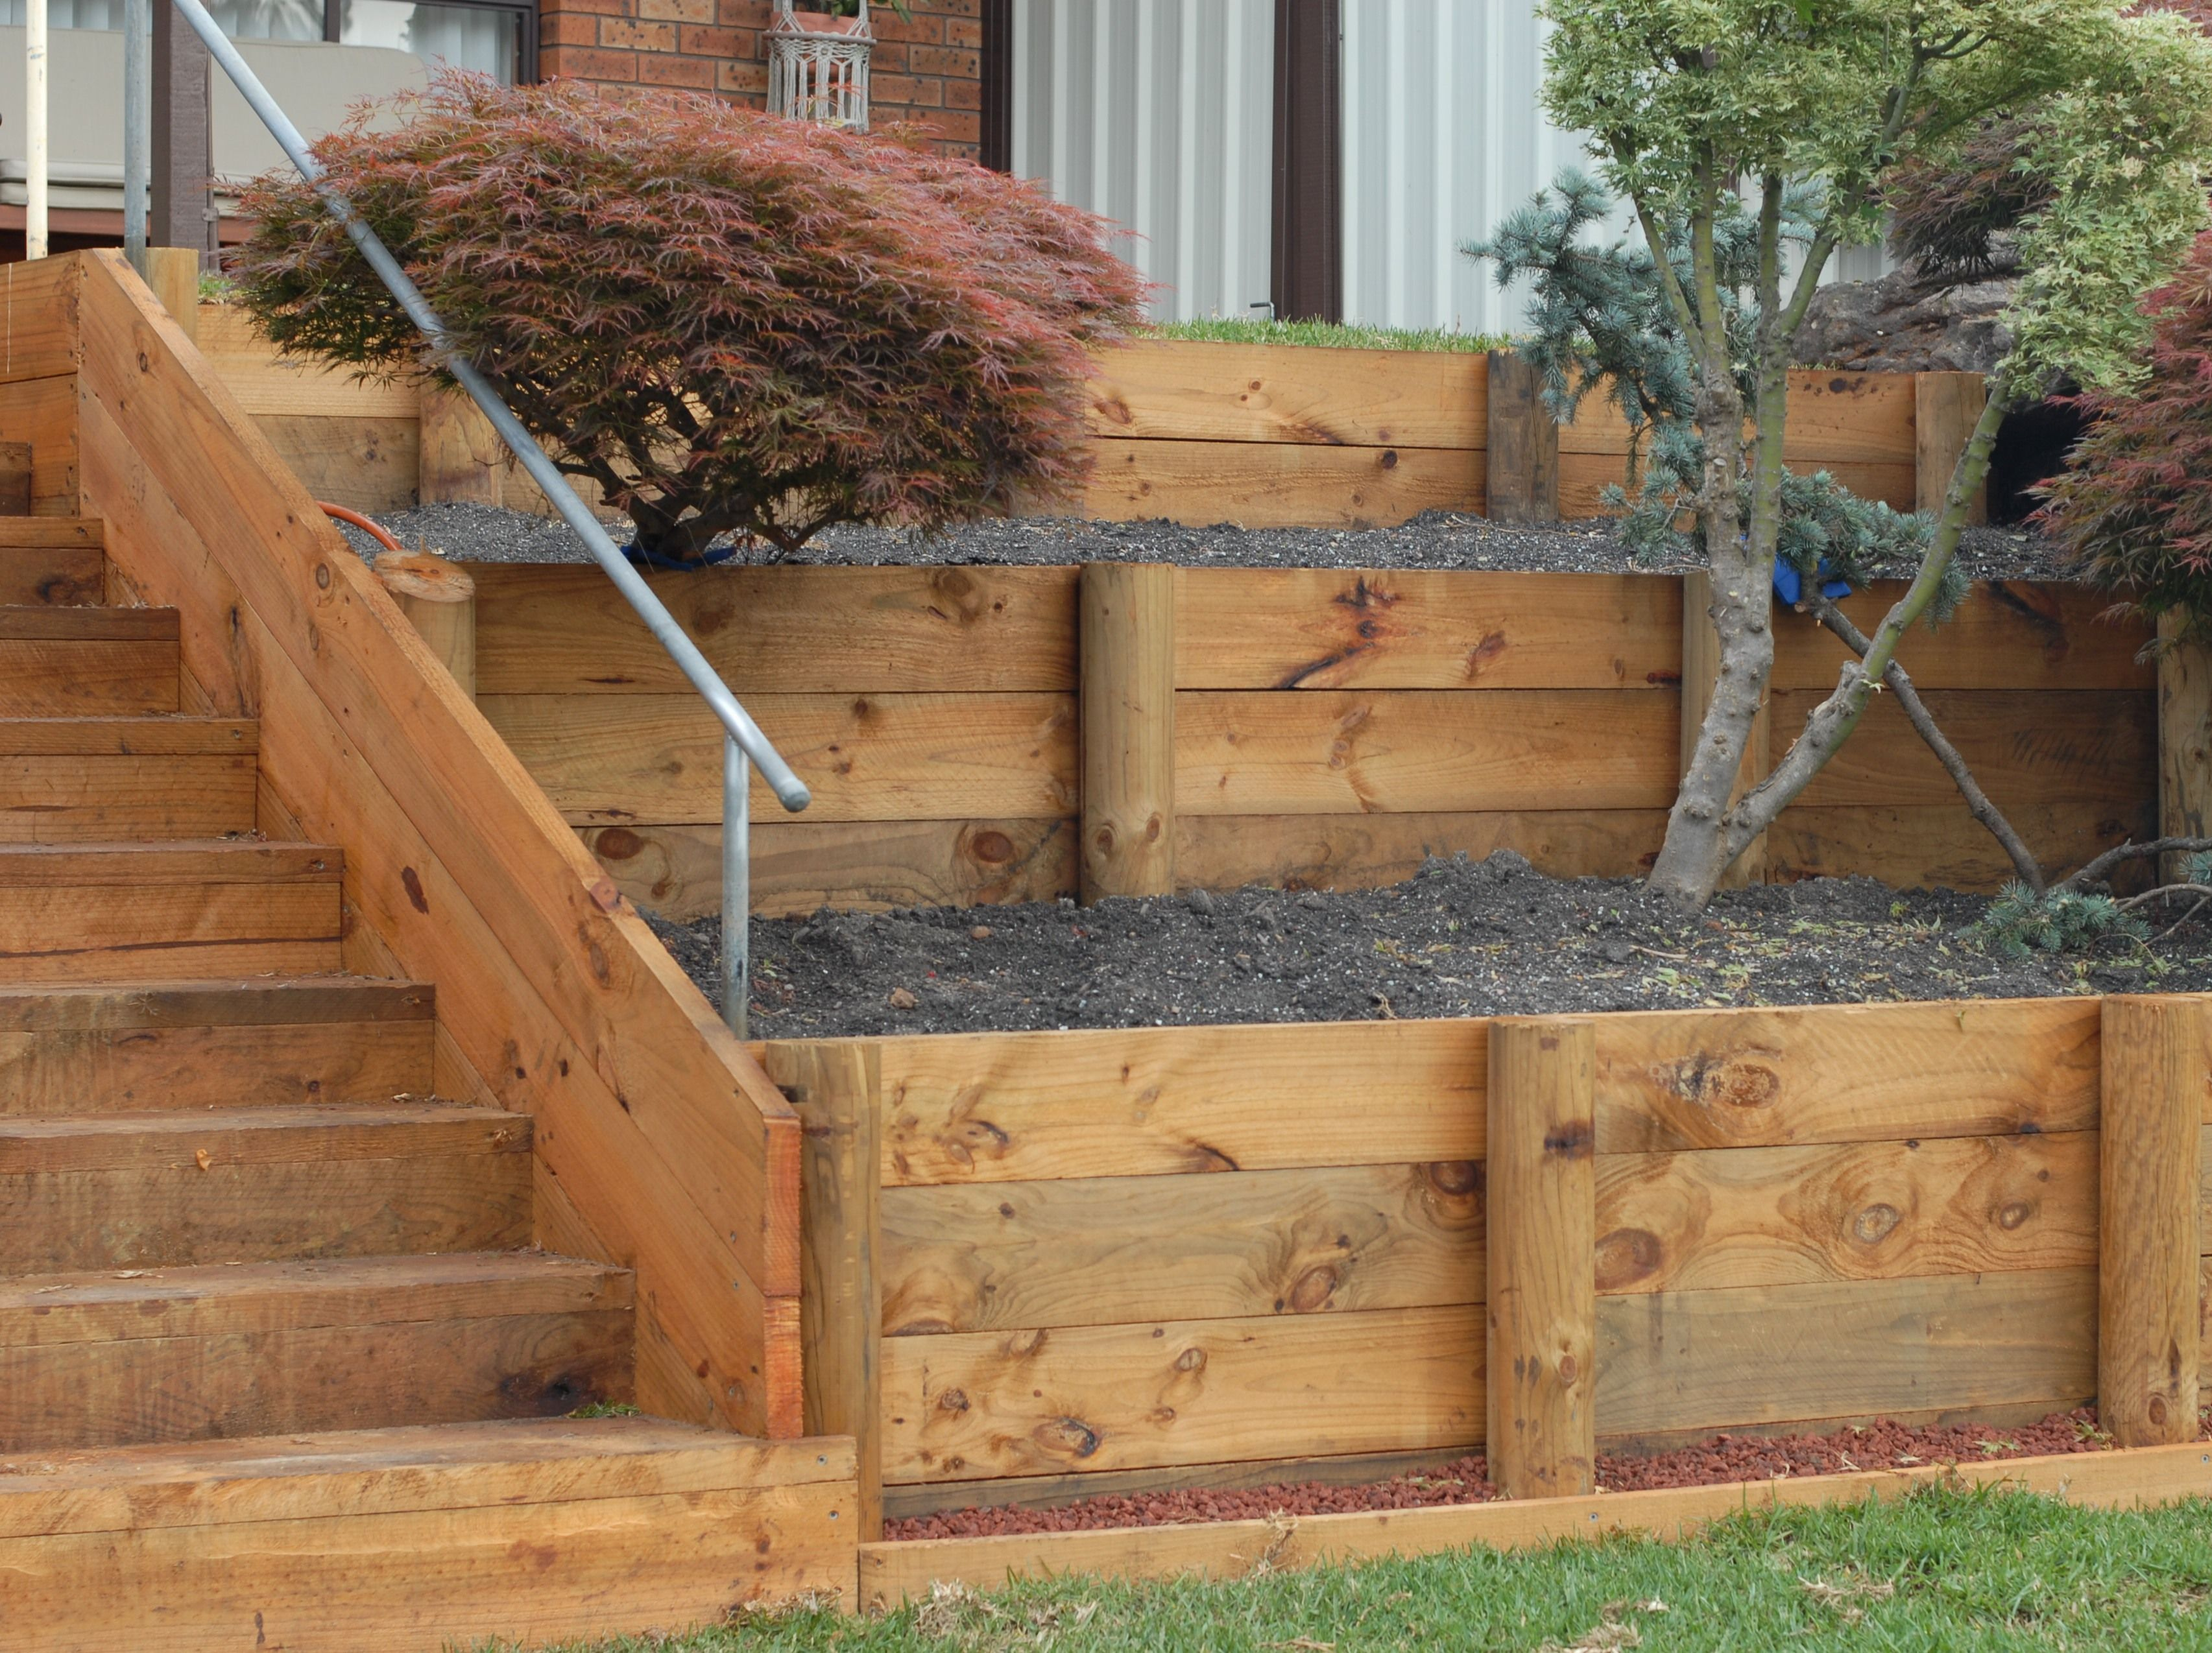 Timber Retaining Wall Design Timber Retaining Wall Design Free Timber Retaining Wall Cost Nz On Architecture Design Ideas 3410 X 2549 With Images Landscaping Retaining Walls Garden Retaining Wall Building A Retaining Wall